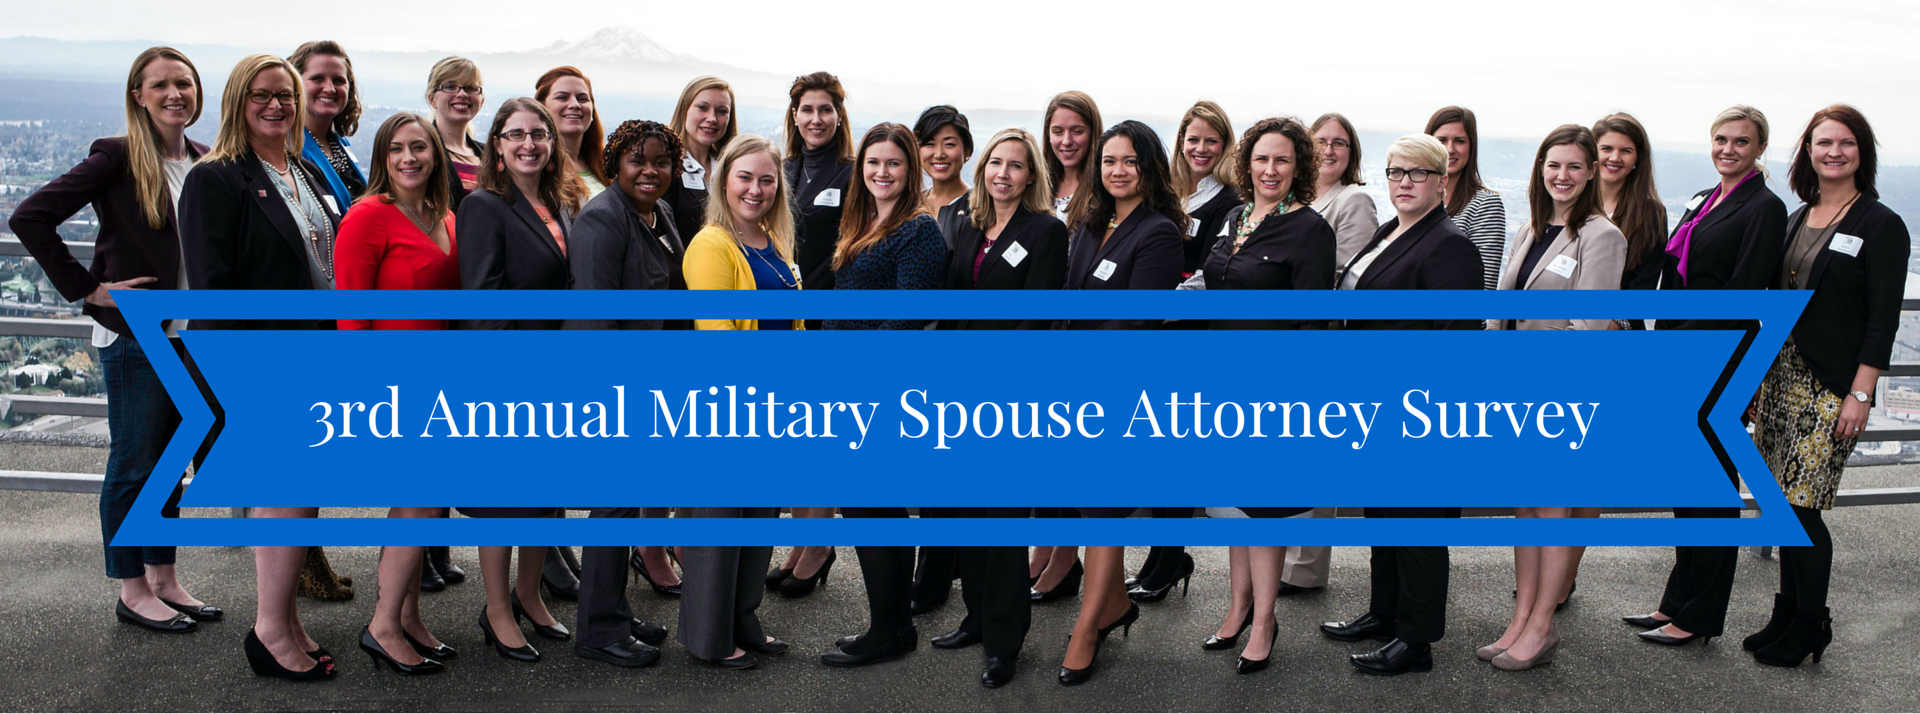 3rd Annual Military Spouse Attorney Survey